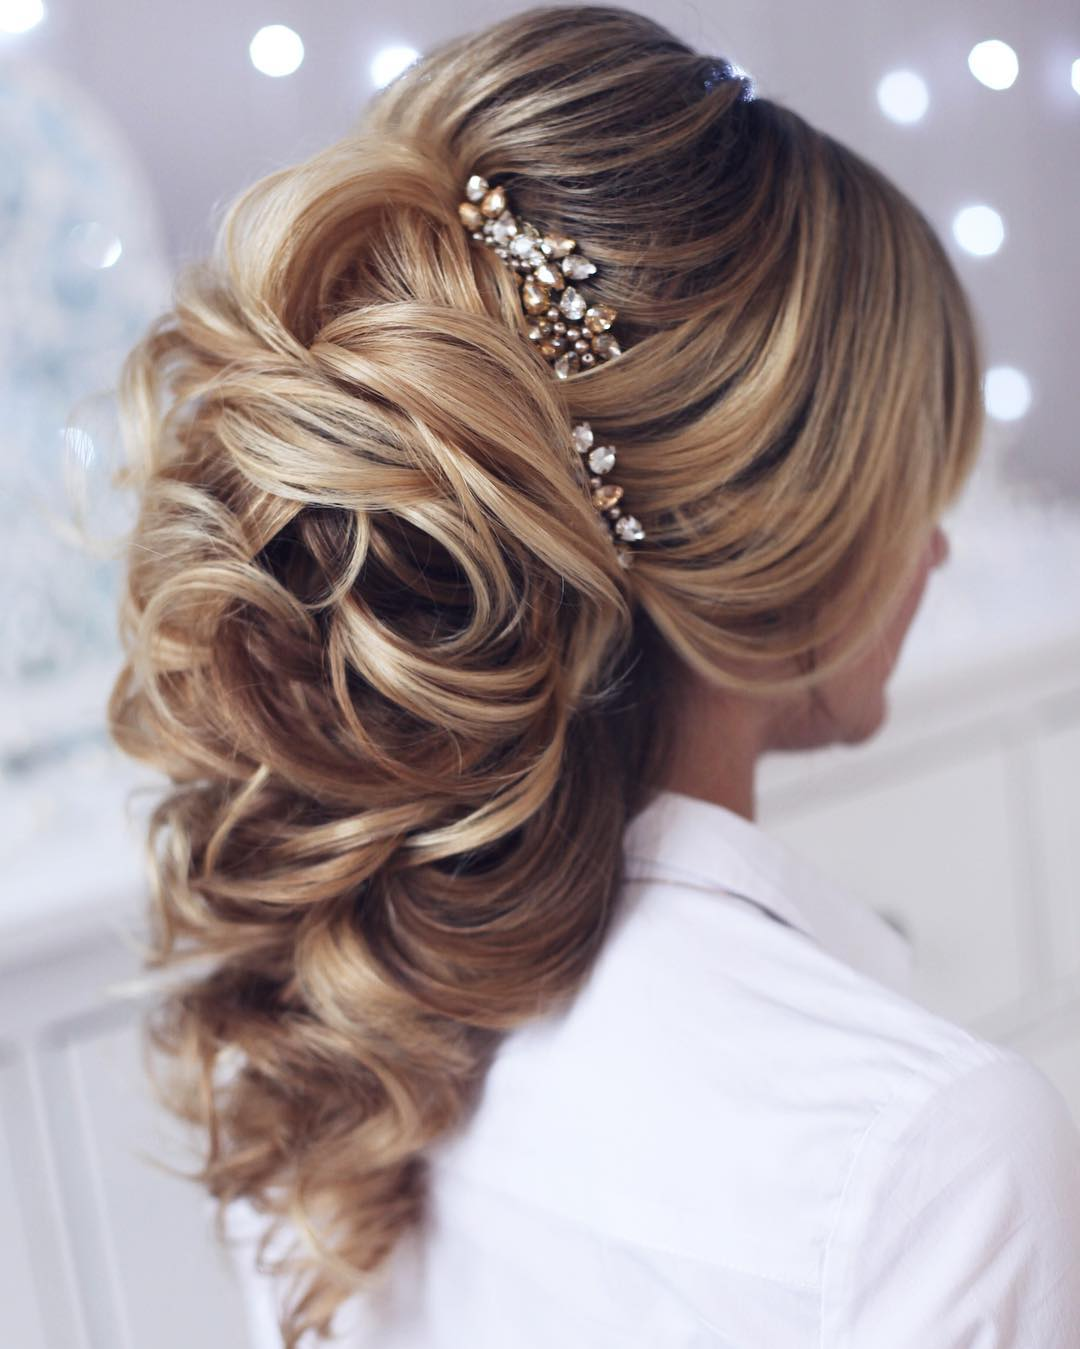 Curly Hairstyles For Long Hair For Wedding: 10 Lavish Wedding Hairstyles For Long Hair